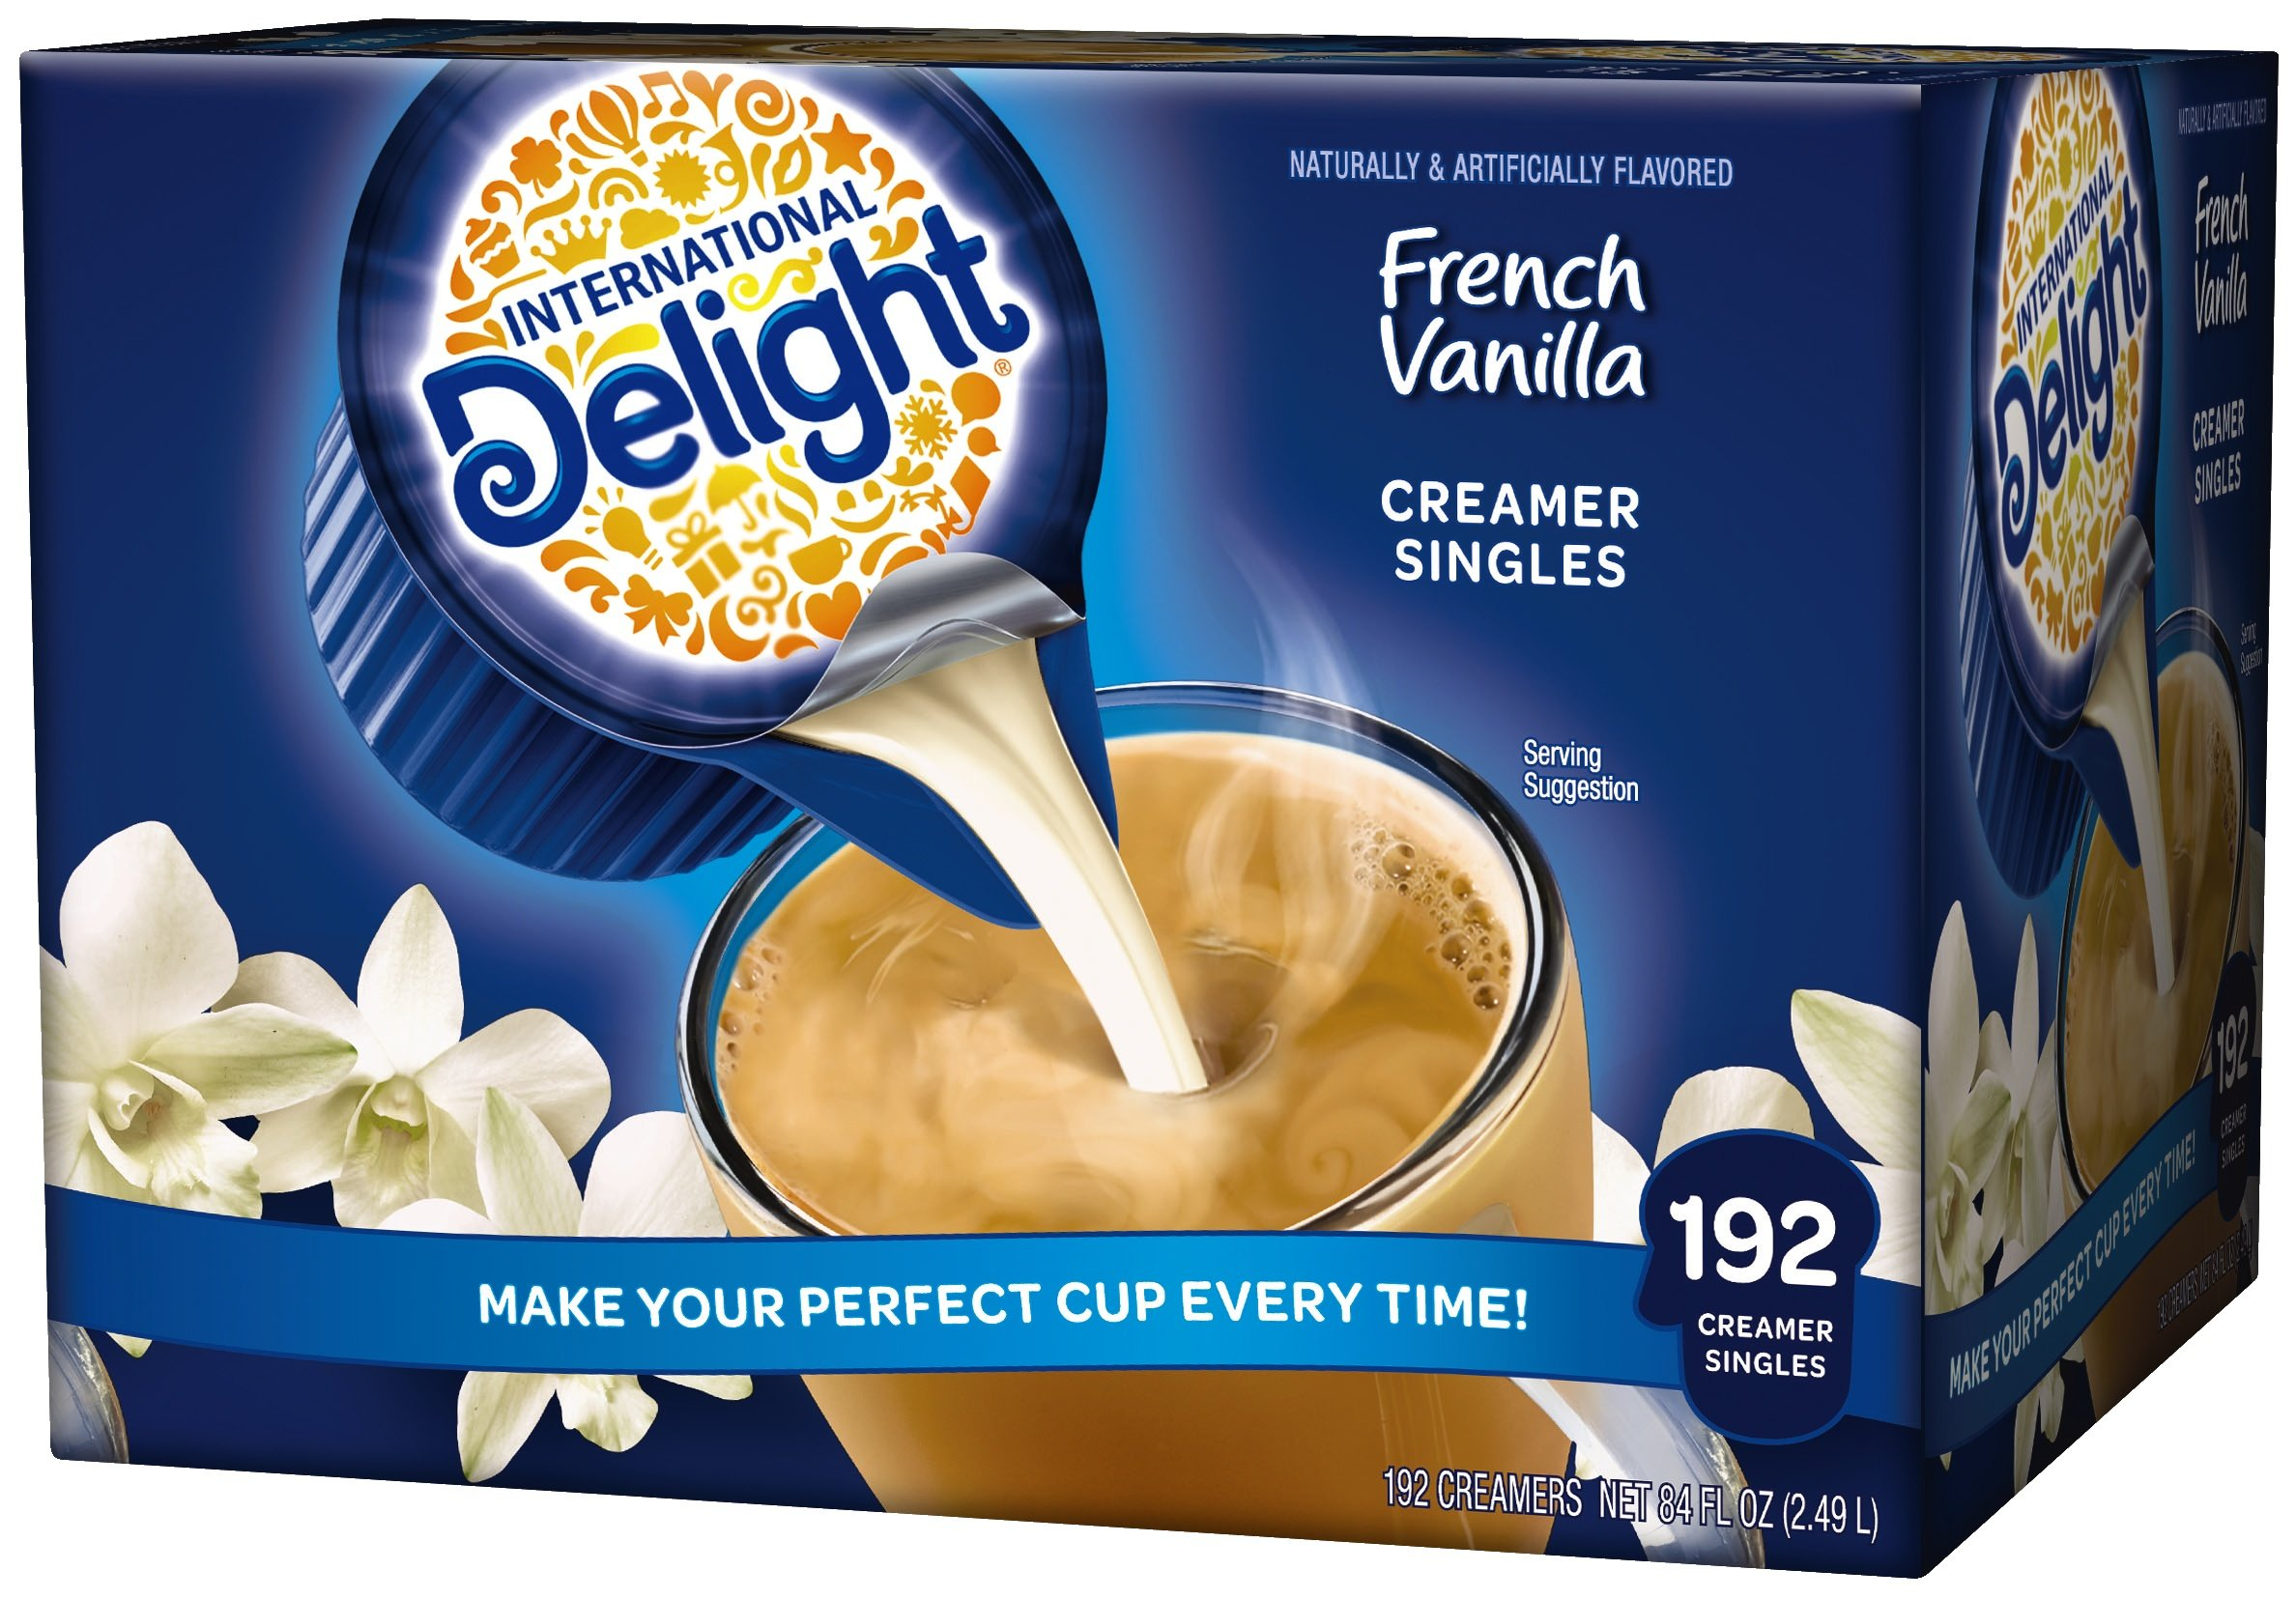 International Delight, French Vanilla, Single-Serve Coffee Creamers, 192 Count, Shelf Stable Non-Dairy Flavored Coffee Creamer, Great for Home Use, Offices, Parties or Group Events